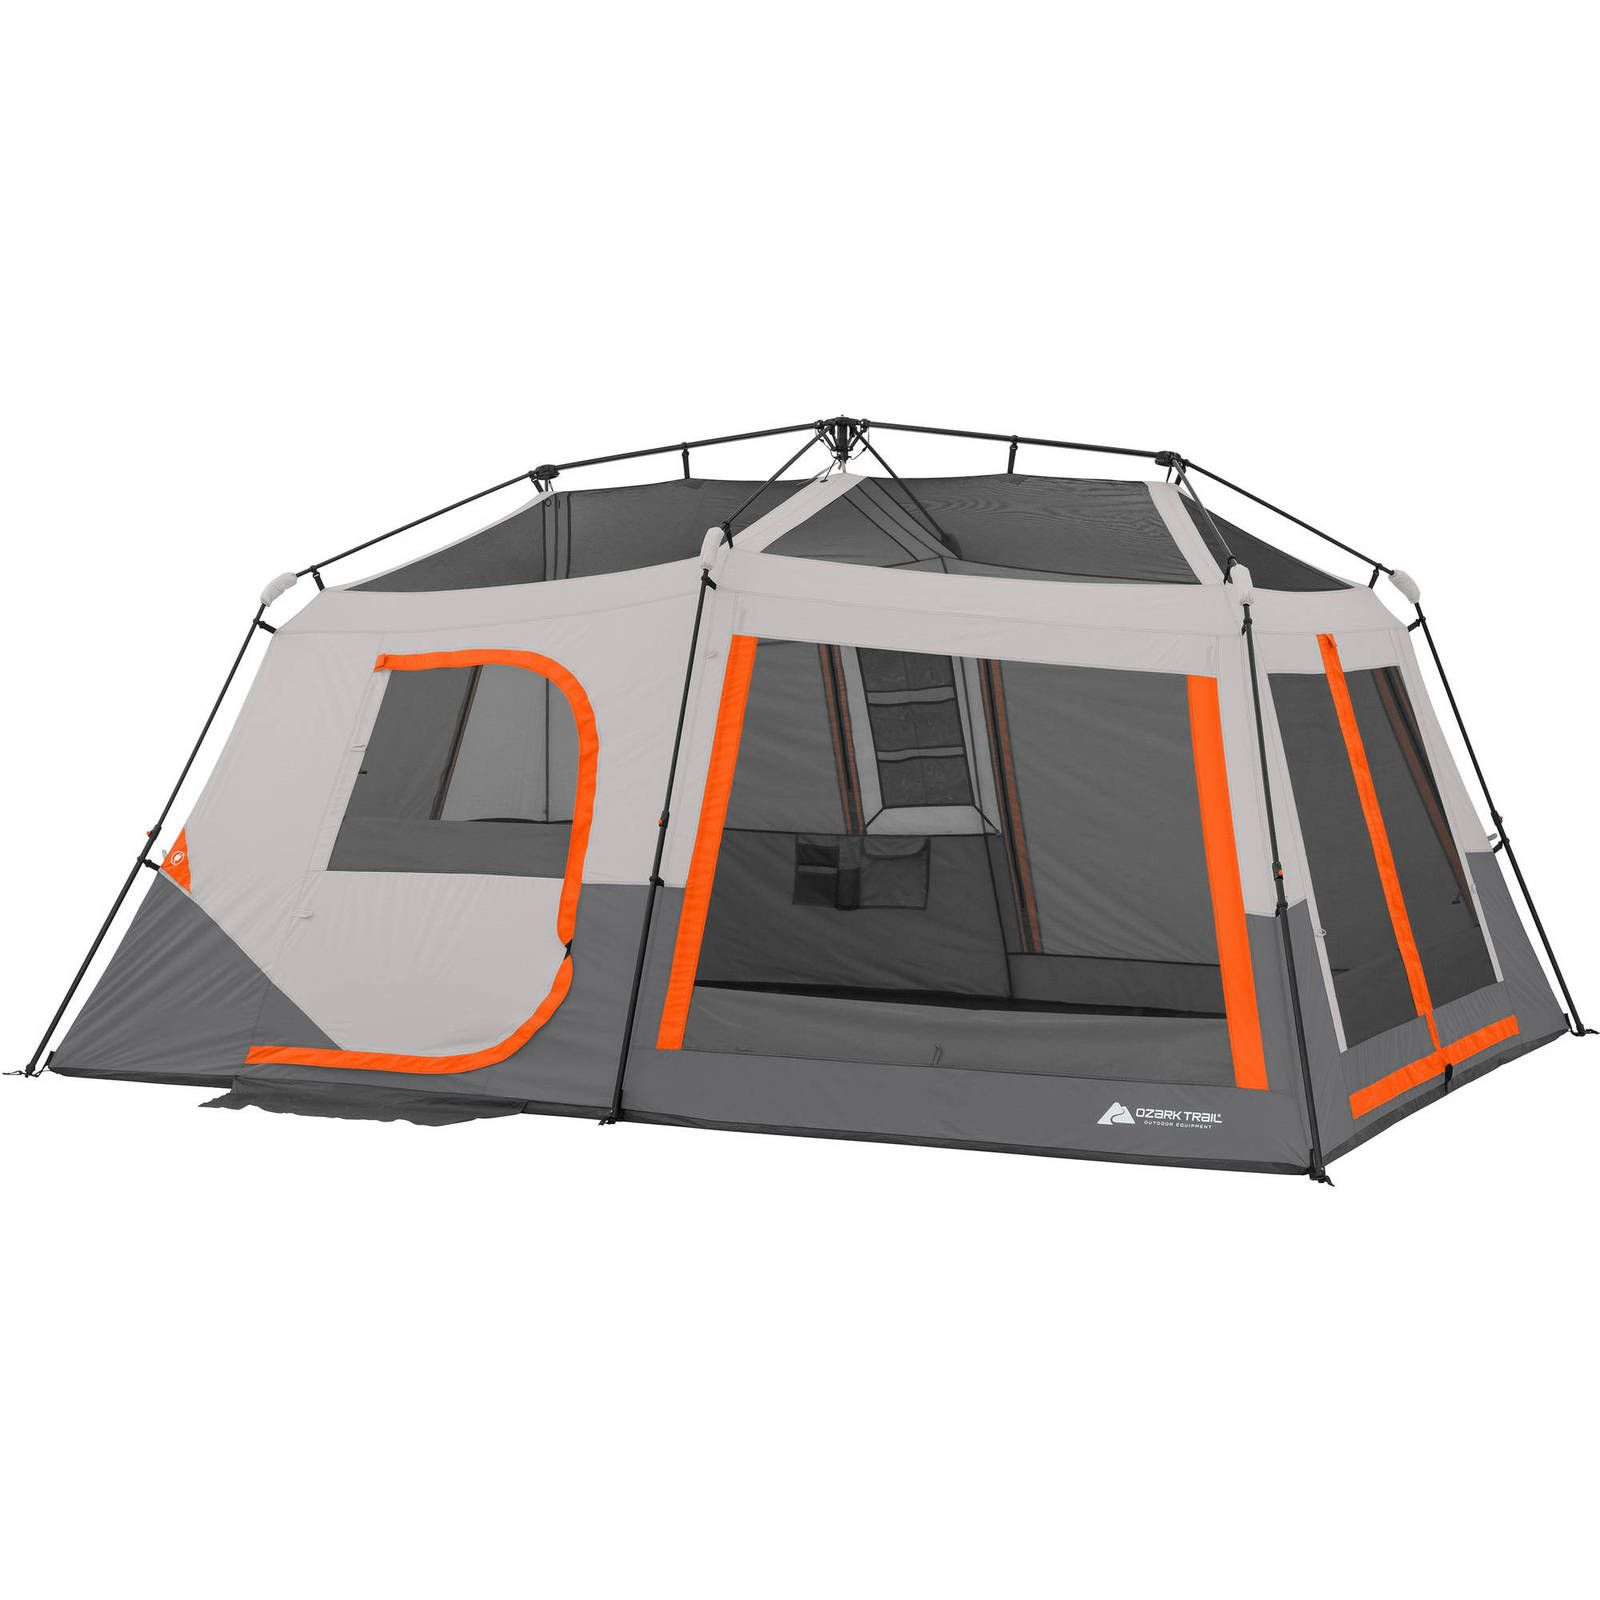 SUV Tailgate Tent Attachment Tents for